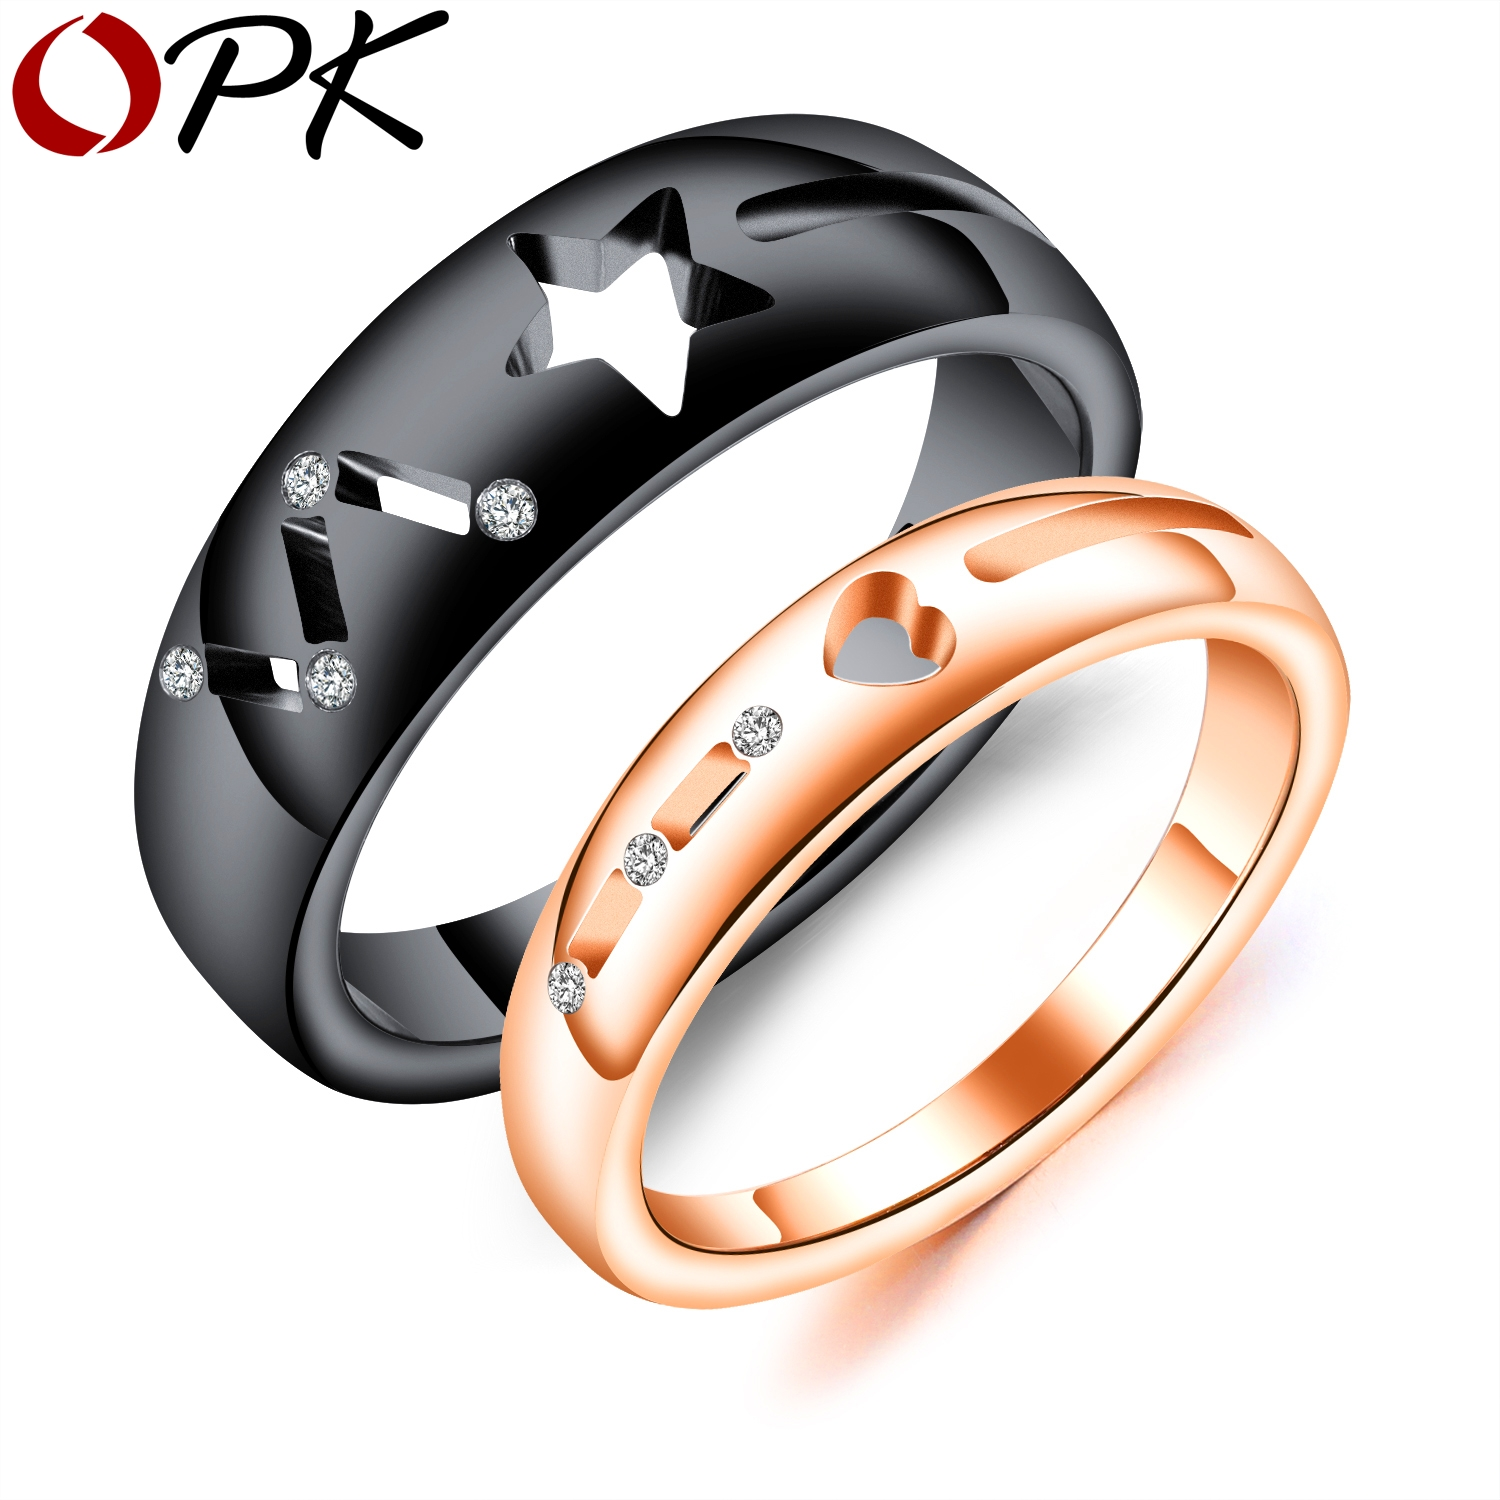 steel engagement hammered product or with stainless moissanite carat ring rings tension diamond